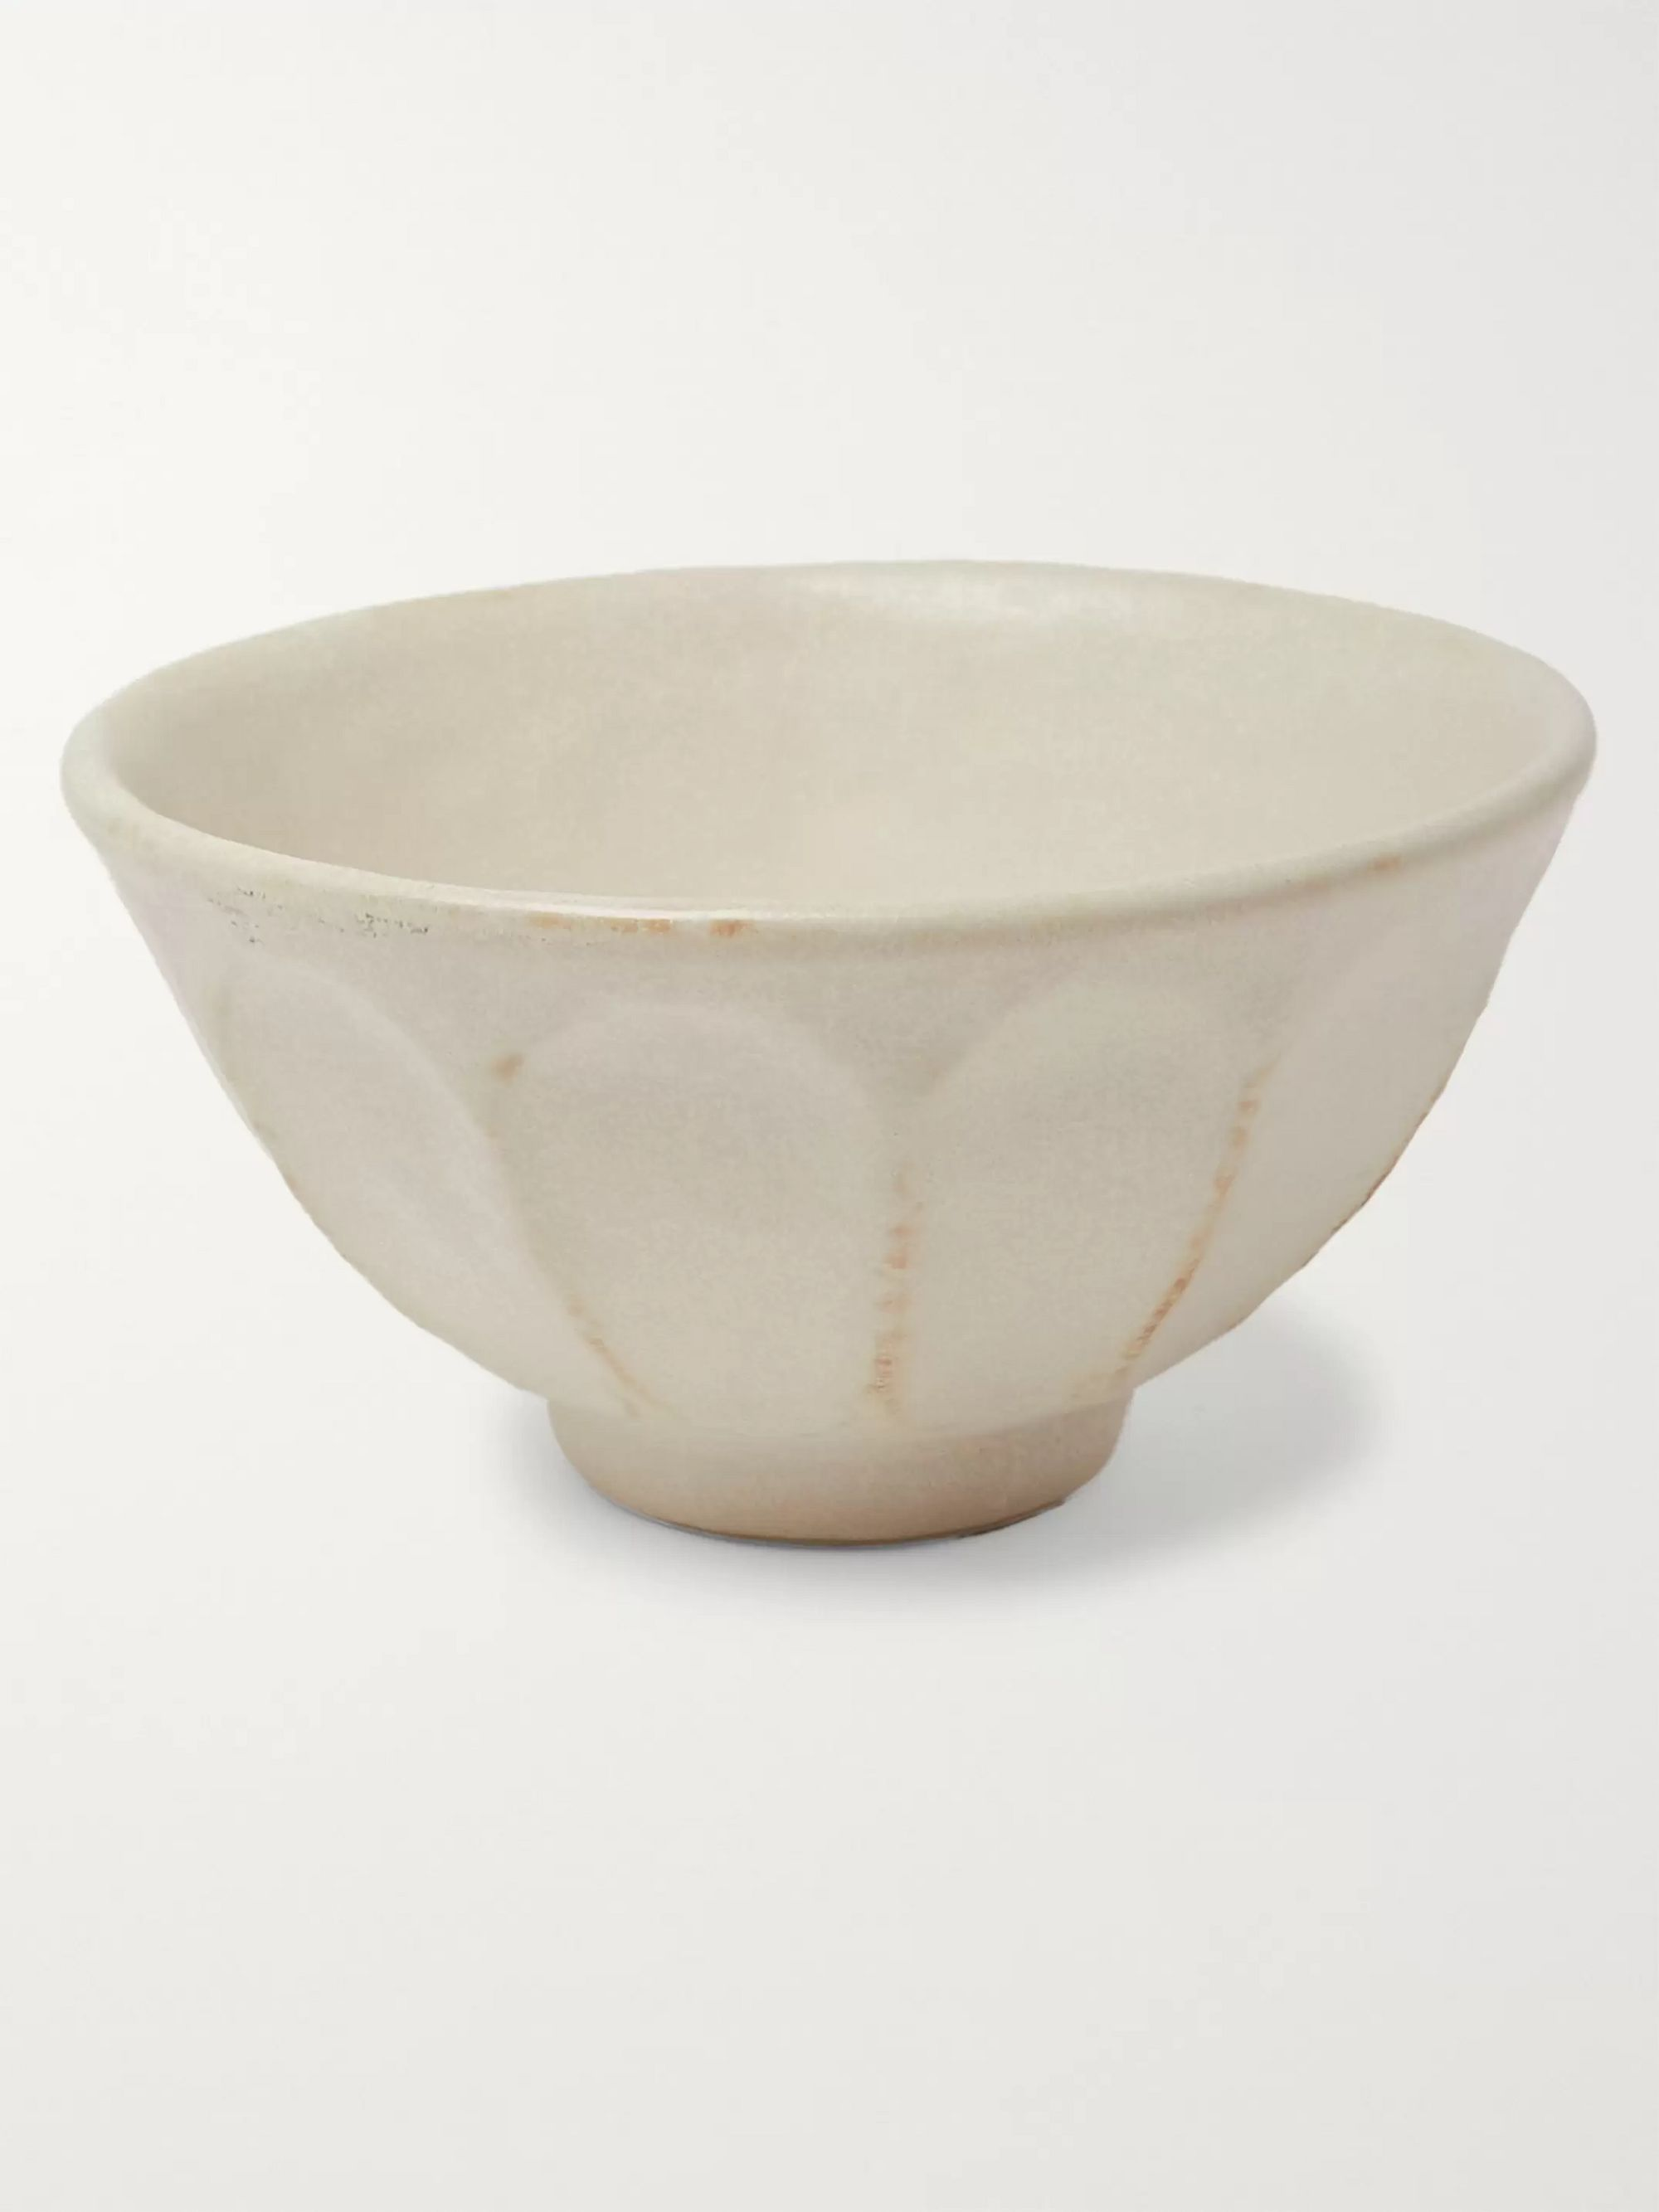 Roman & Williams Guild + Kaneko Kohyo Scalloped Ceramic Bowl